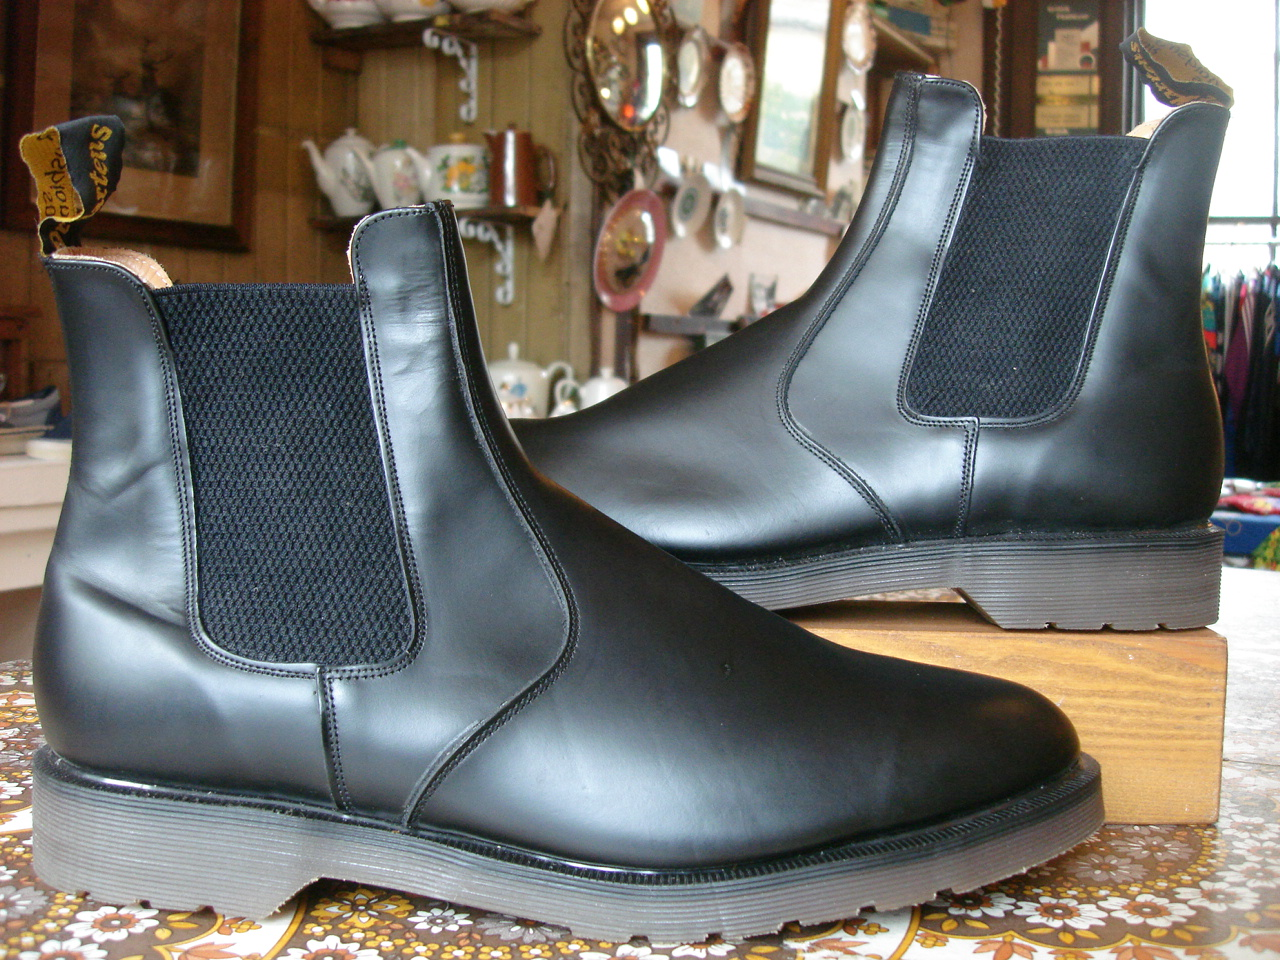 theothersideofthepillow vintage dr martens black dealer boot uk12 chelsea boot made in england. Black Bedroom Furniture Sets. Home Design Ideas